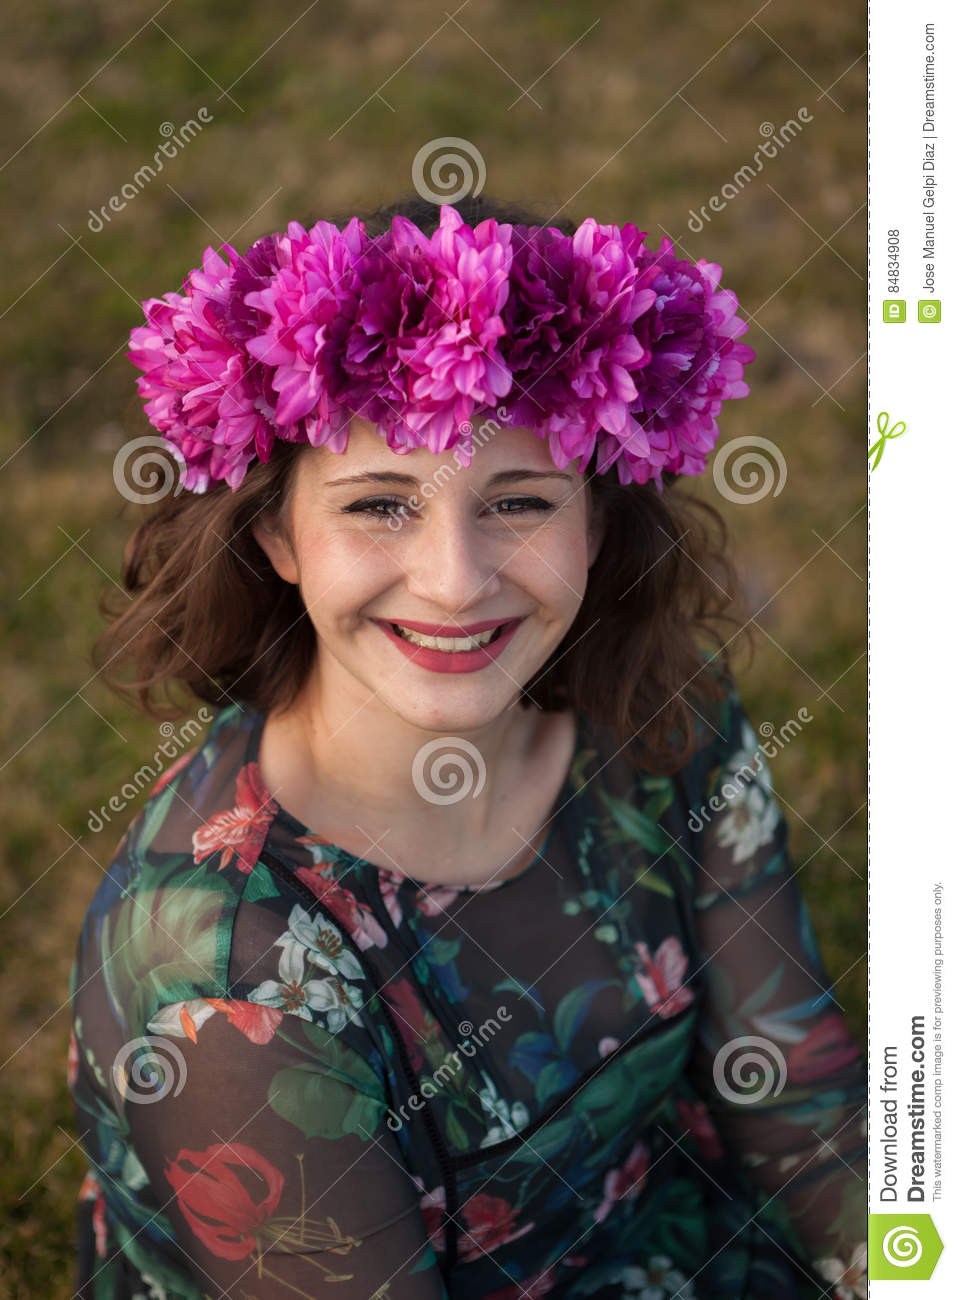 Beautiful Curvy Girl With A Flower Crown Stock Photo Image Of